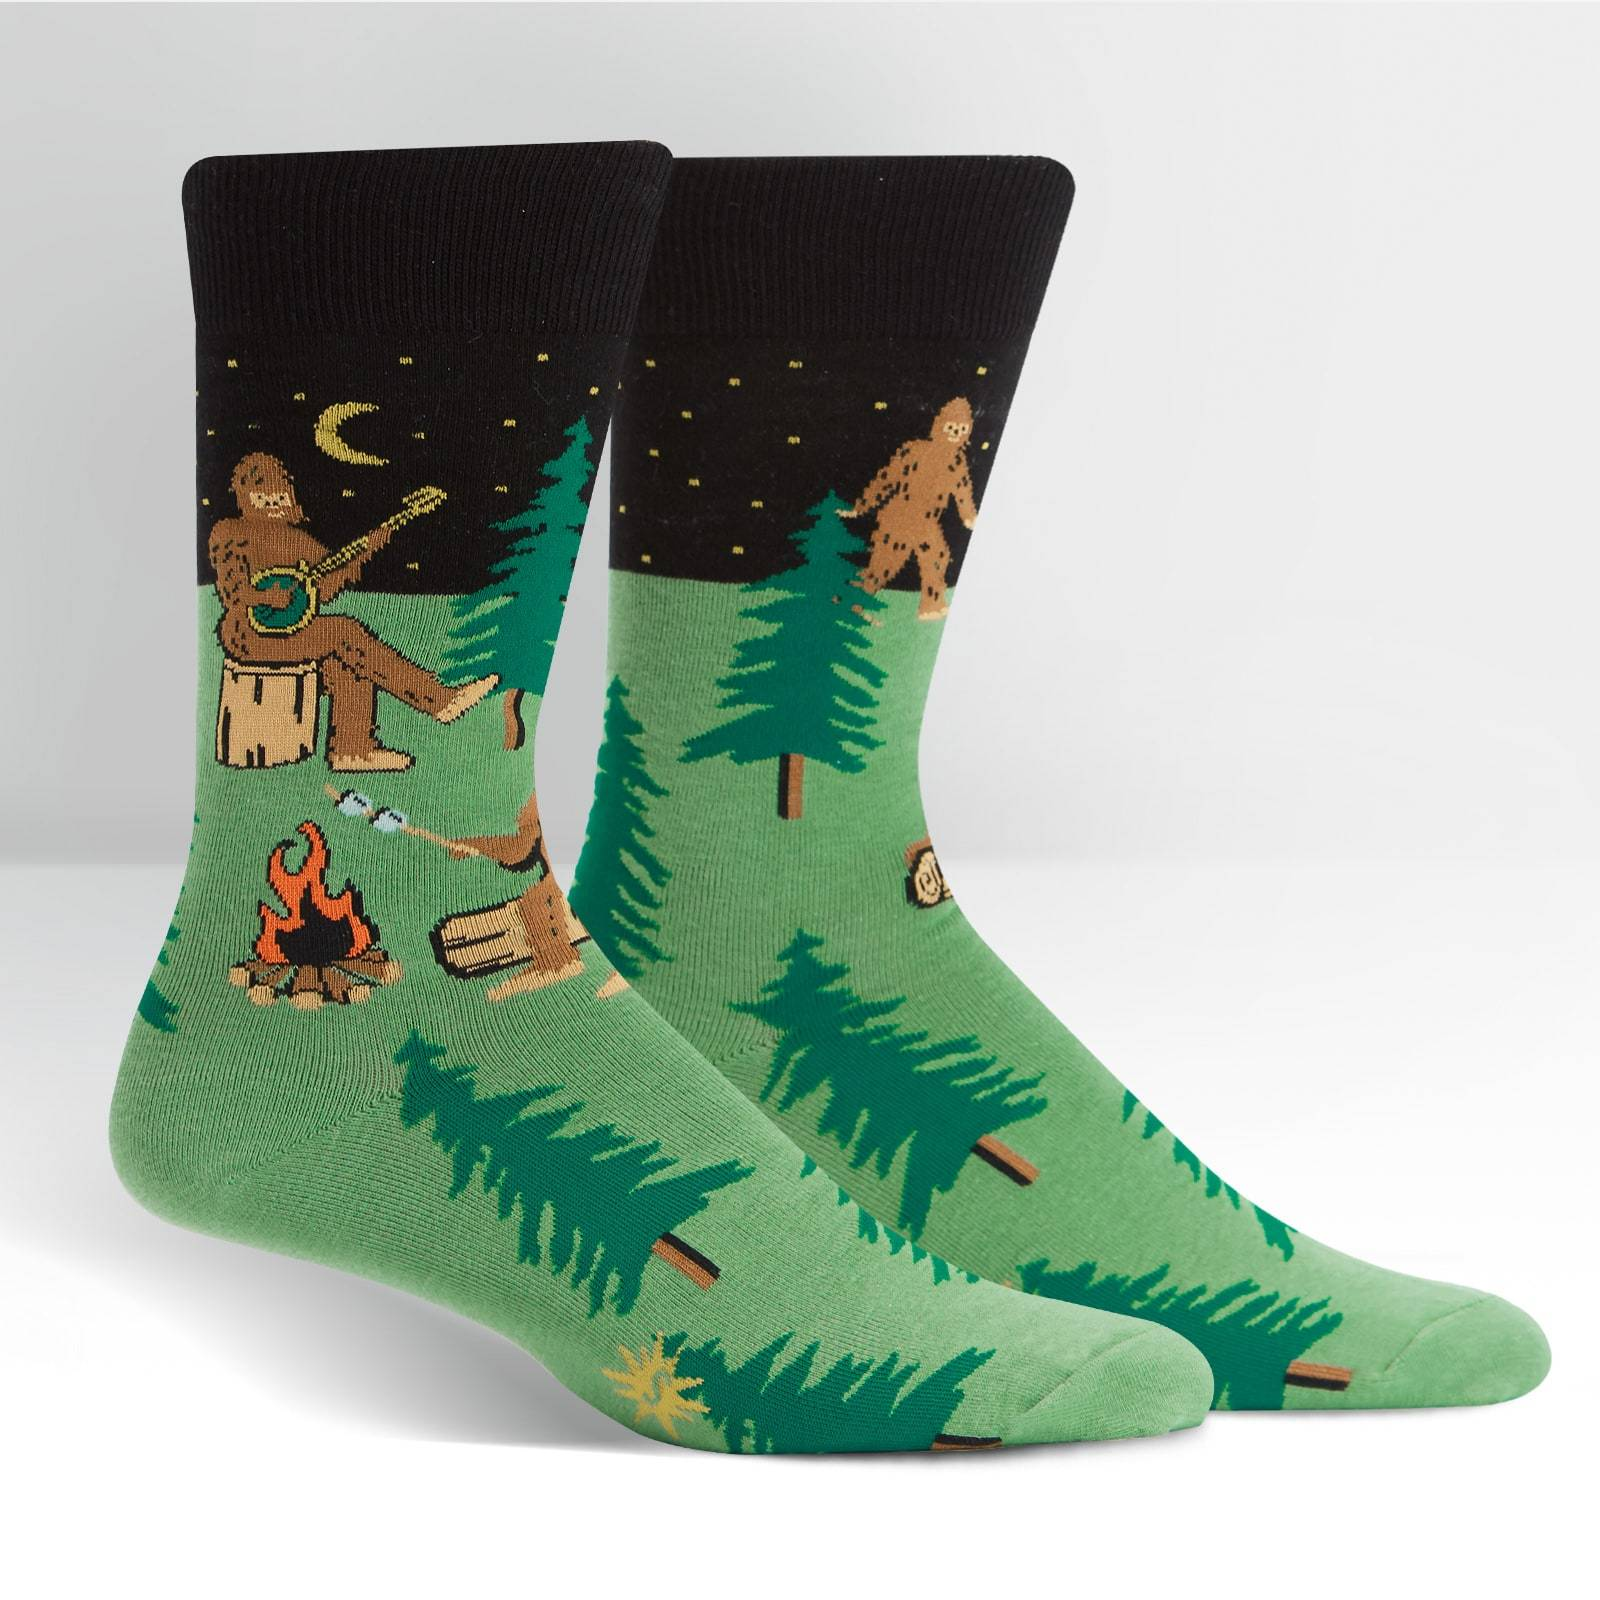 Sasquatch Camp Out Socks Men's Crew Sock